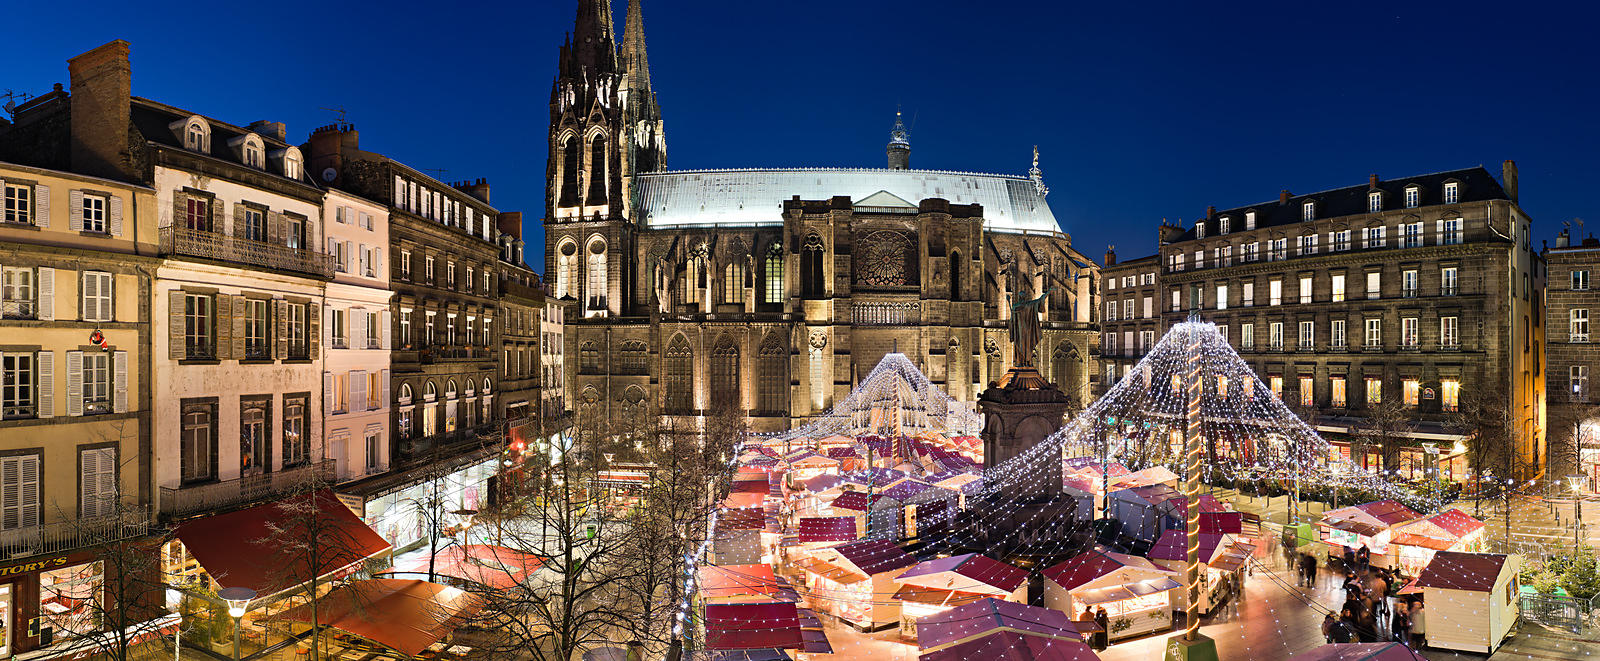 Photostock arnaud frich place de la victoire at christmas clermont ferrand - Magasin de meuble a clermont ferrand ...